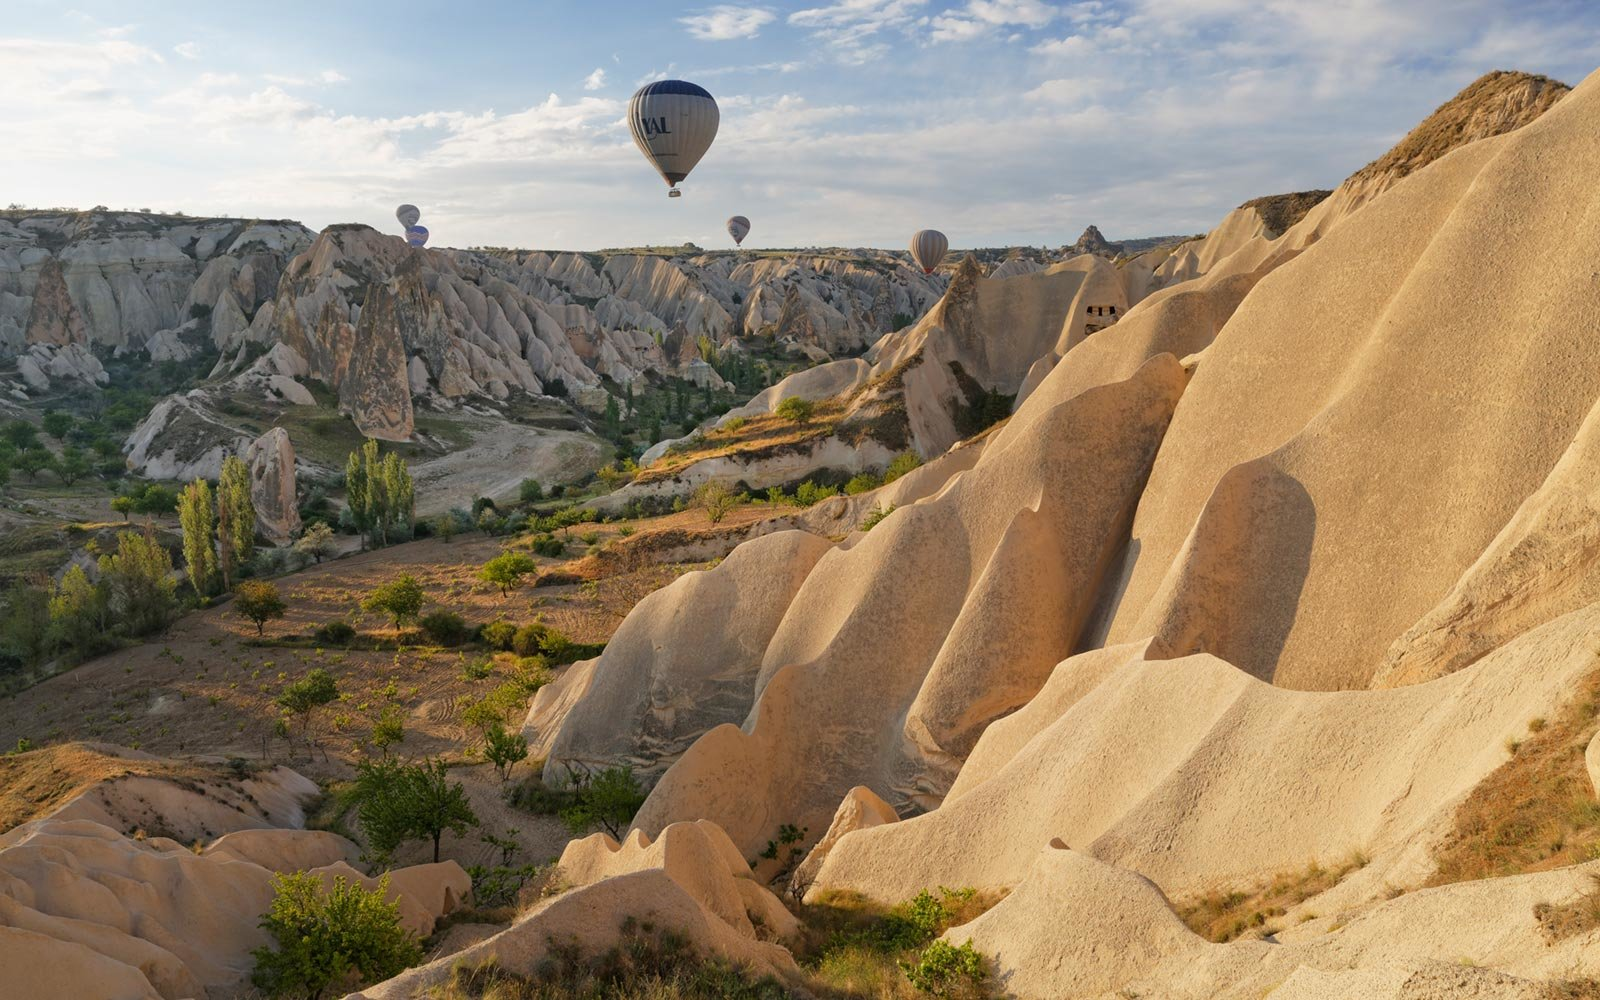 Hot Air Balloons, Goreme National Park, Cappadocia, Turkey